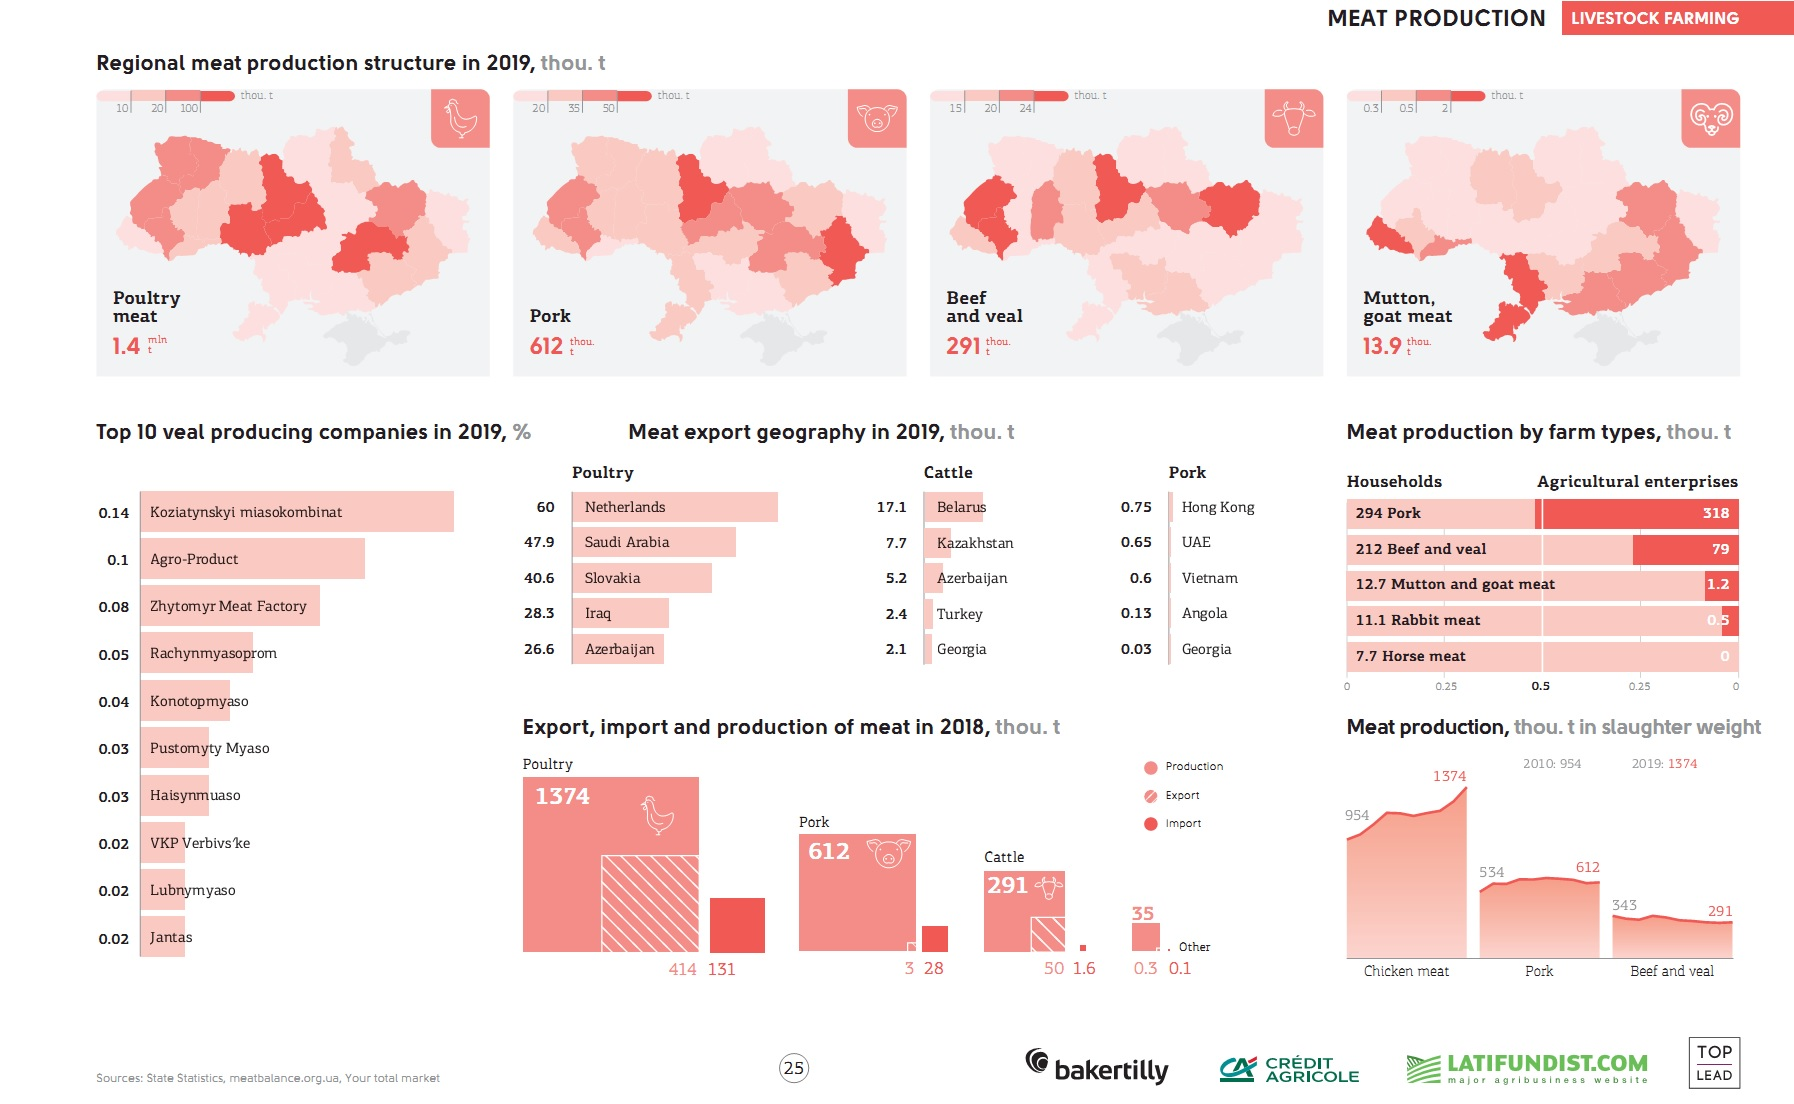 Meat production in Ukraine (click for full resolution)